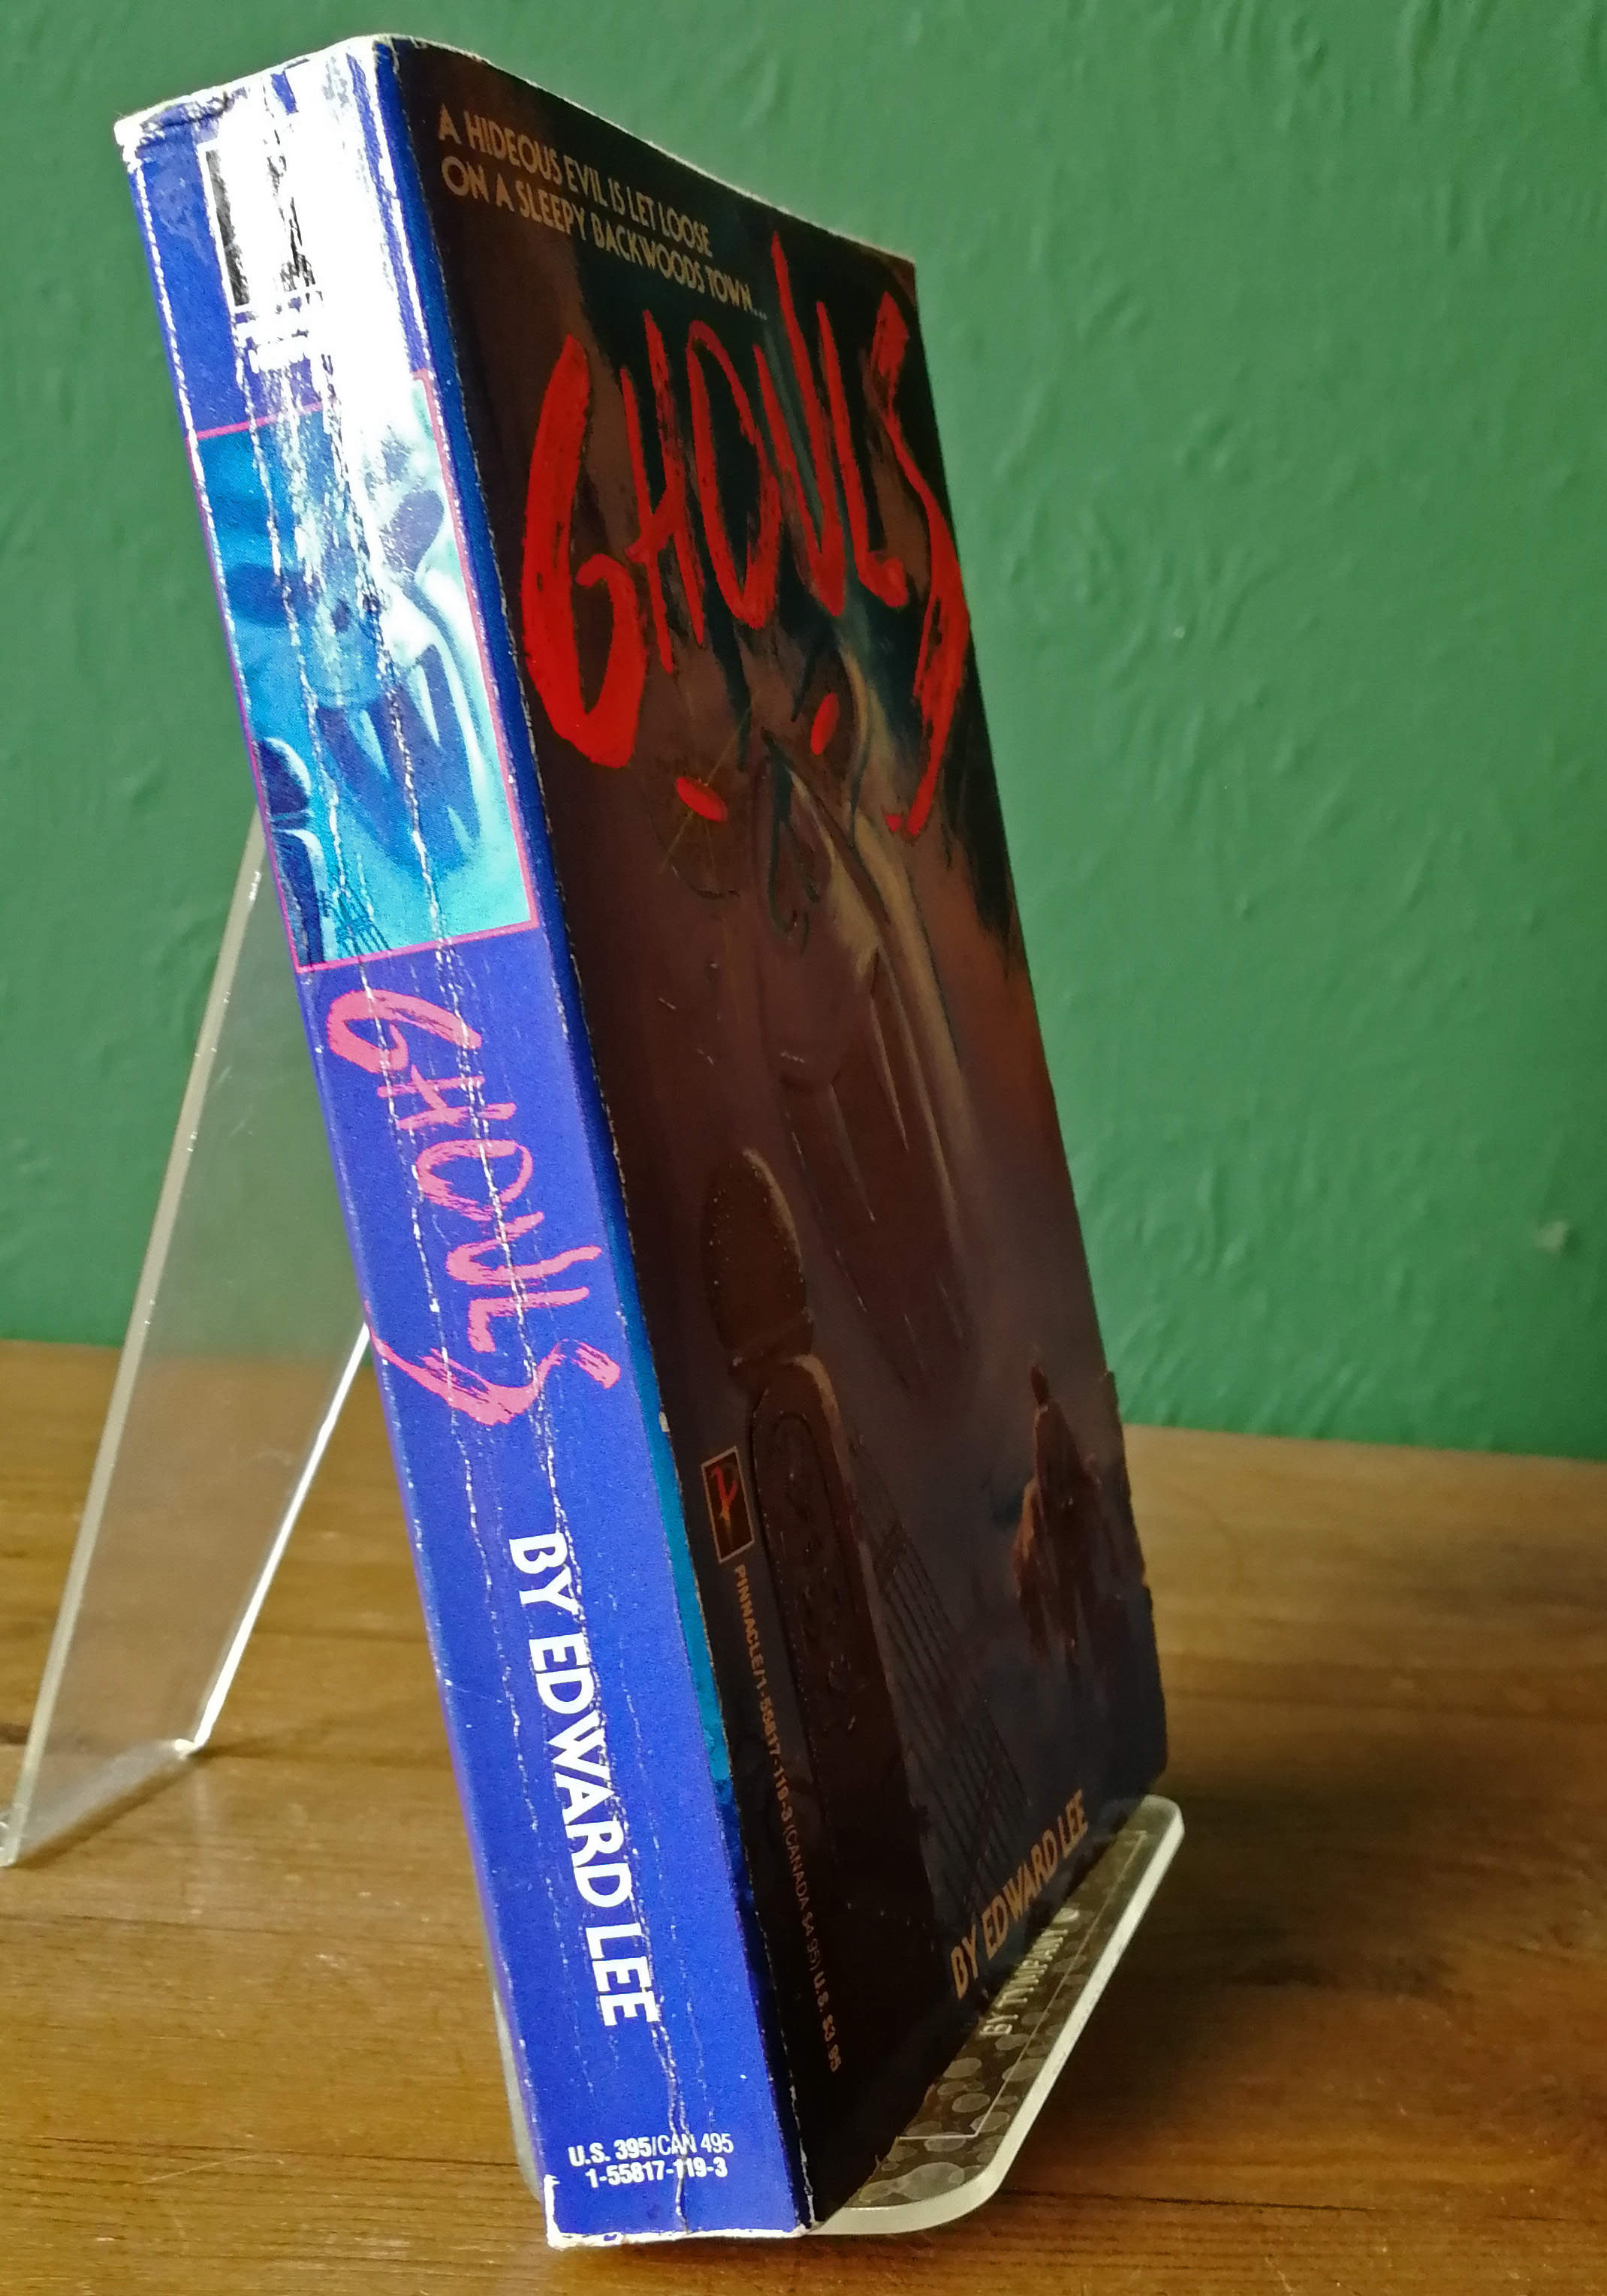 Ghouls Signed US Paperback